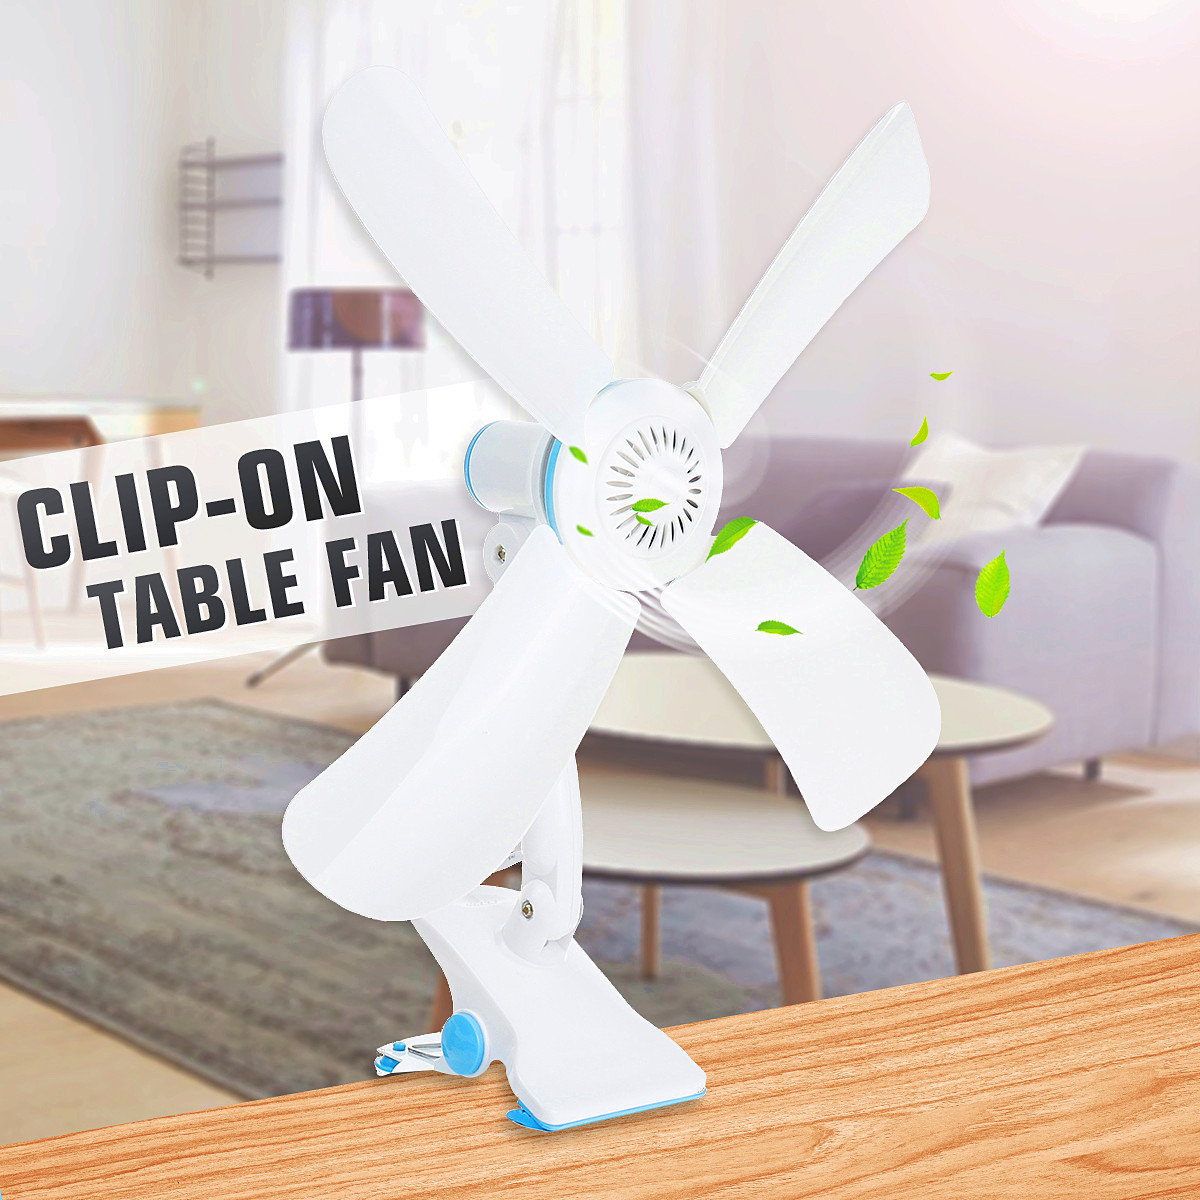 3-IN-1 DC12V Cordless Fan Rechargeable Clip-On Fan Cool Fan Cooling Table Camping Outdoor3-IN-1 DC12V Cordless Fan Rechargeable Clip-On Fan Cool Fan Cooling Table Camping Outdoor